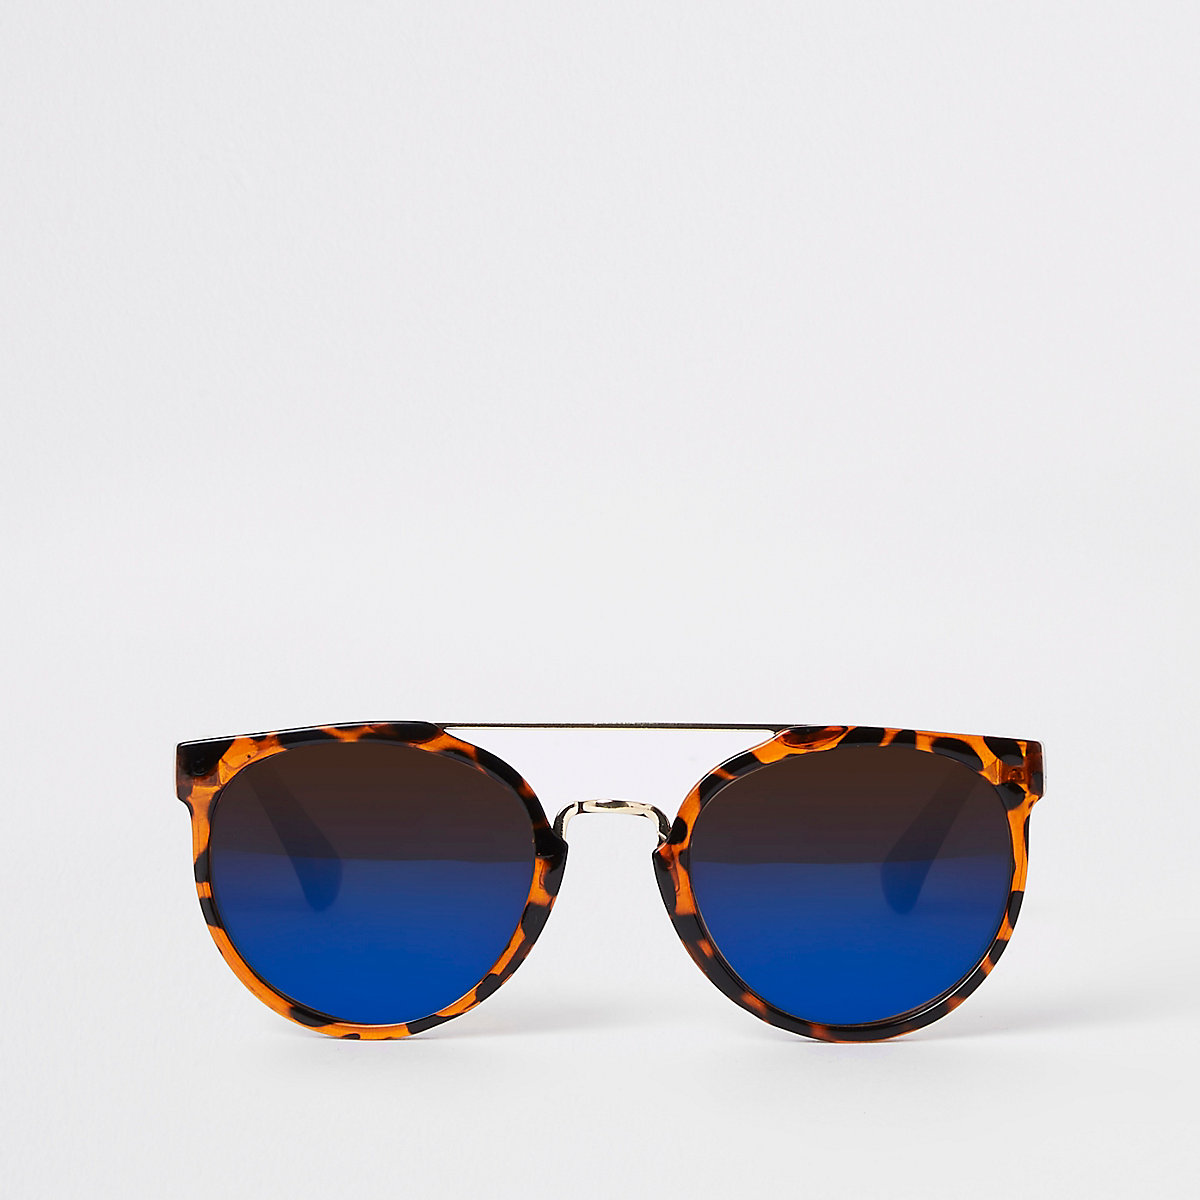 Boys brown tortoise shell retro sunglasses